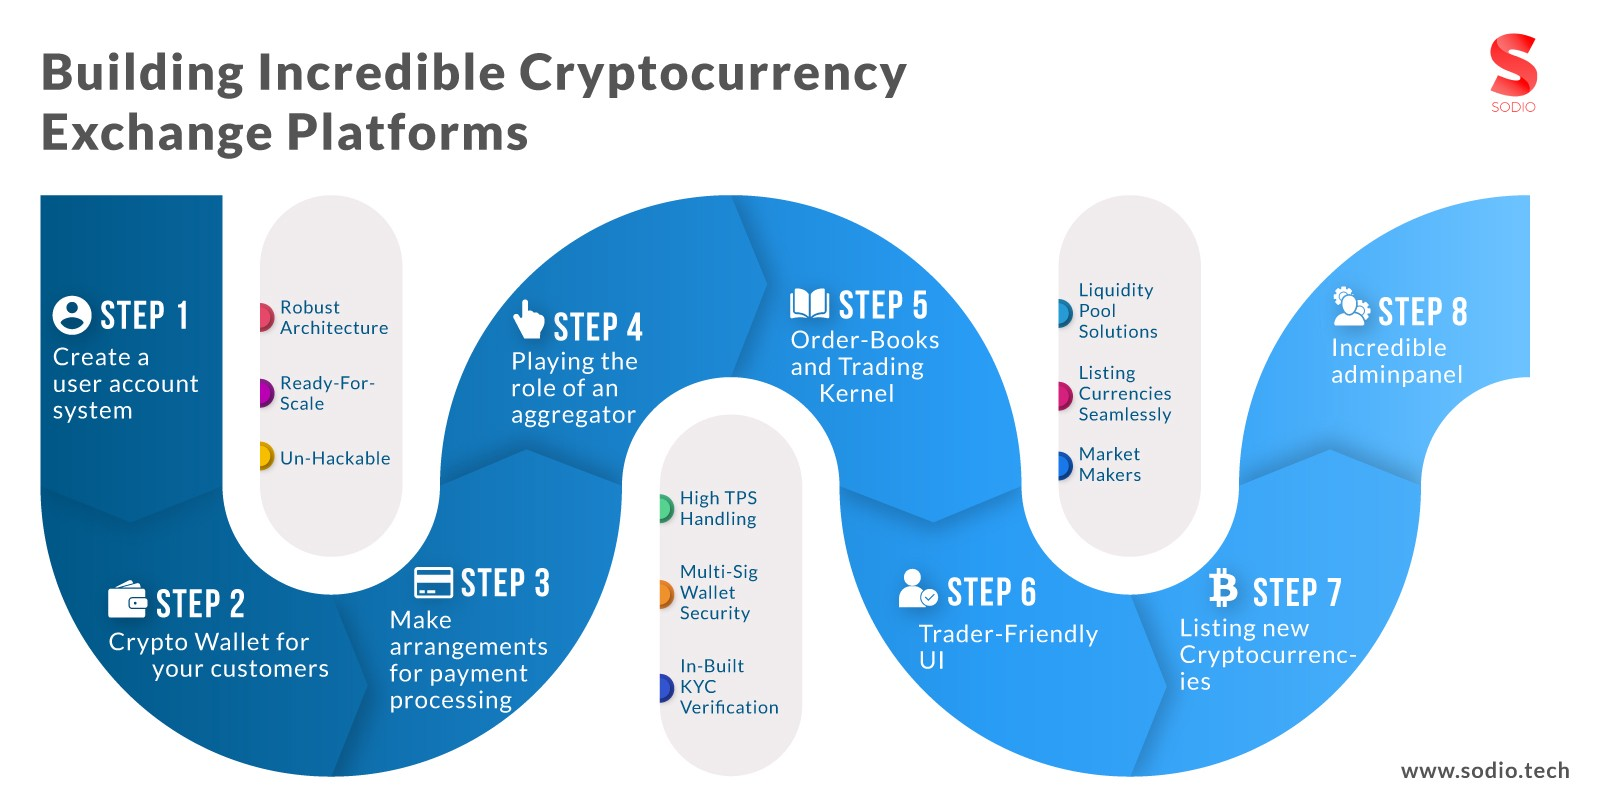 /how-do-cryptocurrency-exchanges-work-and-what-technologies-are-driving-disruption-33d0007eb018 feature image